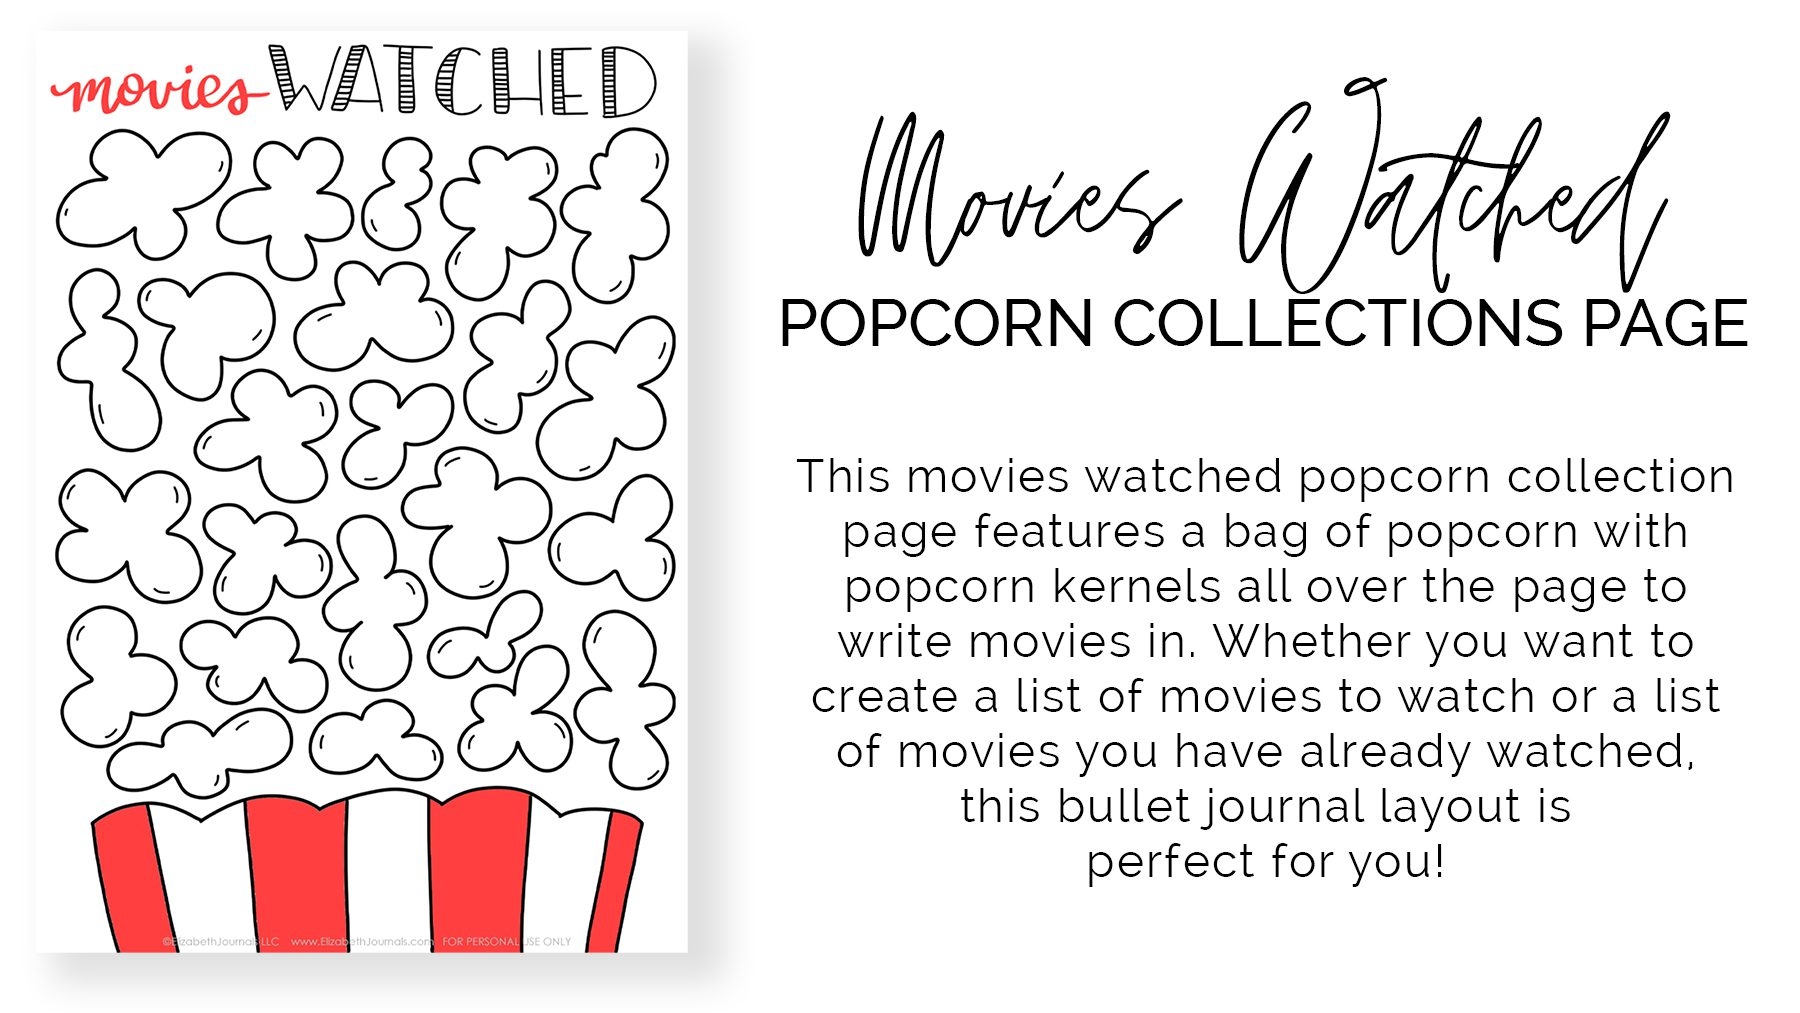 banner_movies watched popcorn collections page_description_image